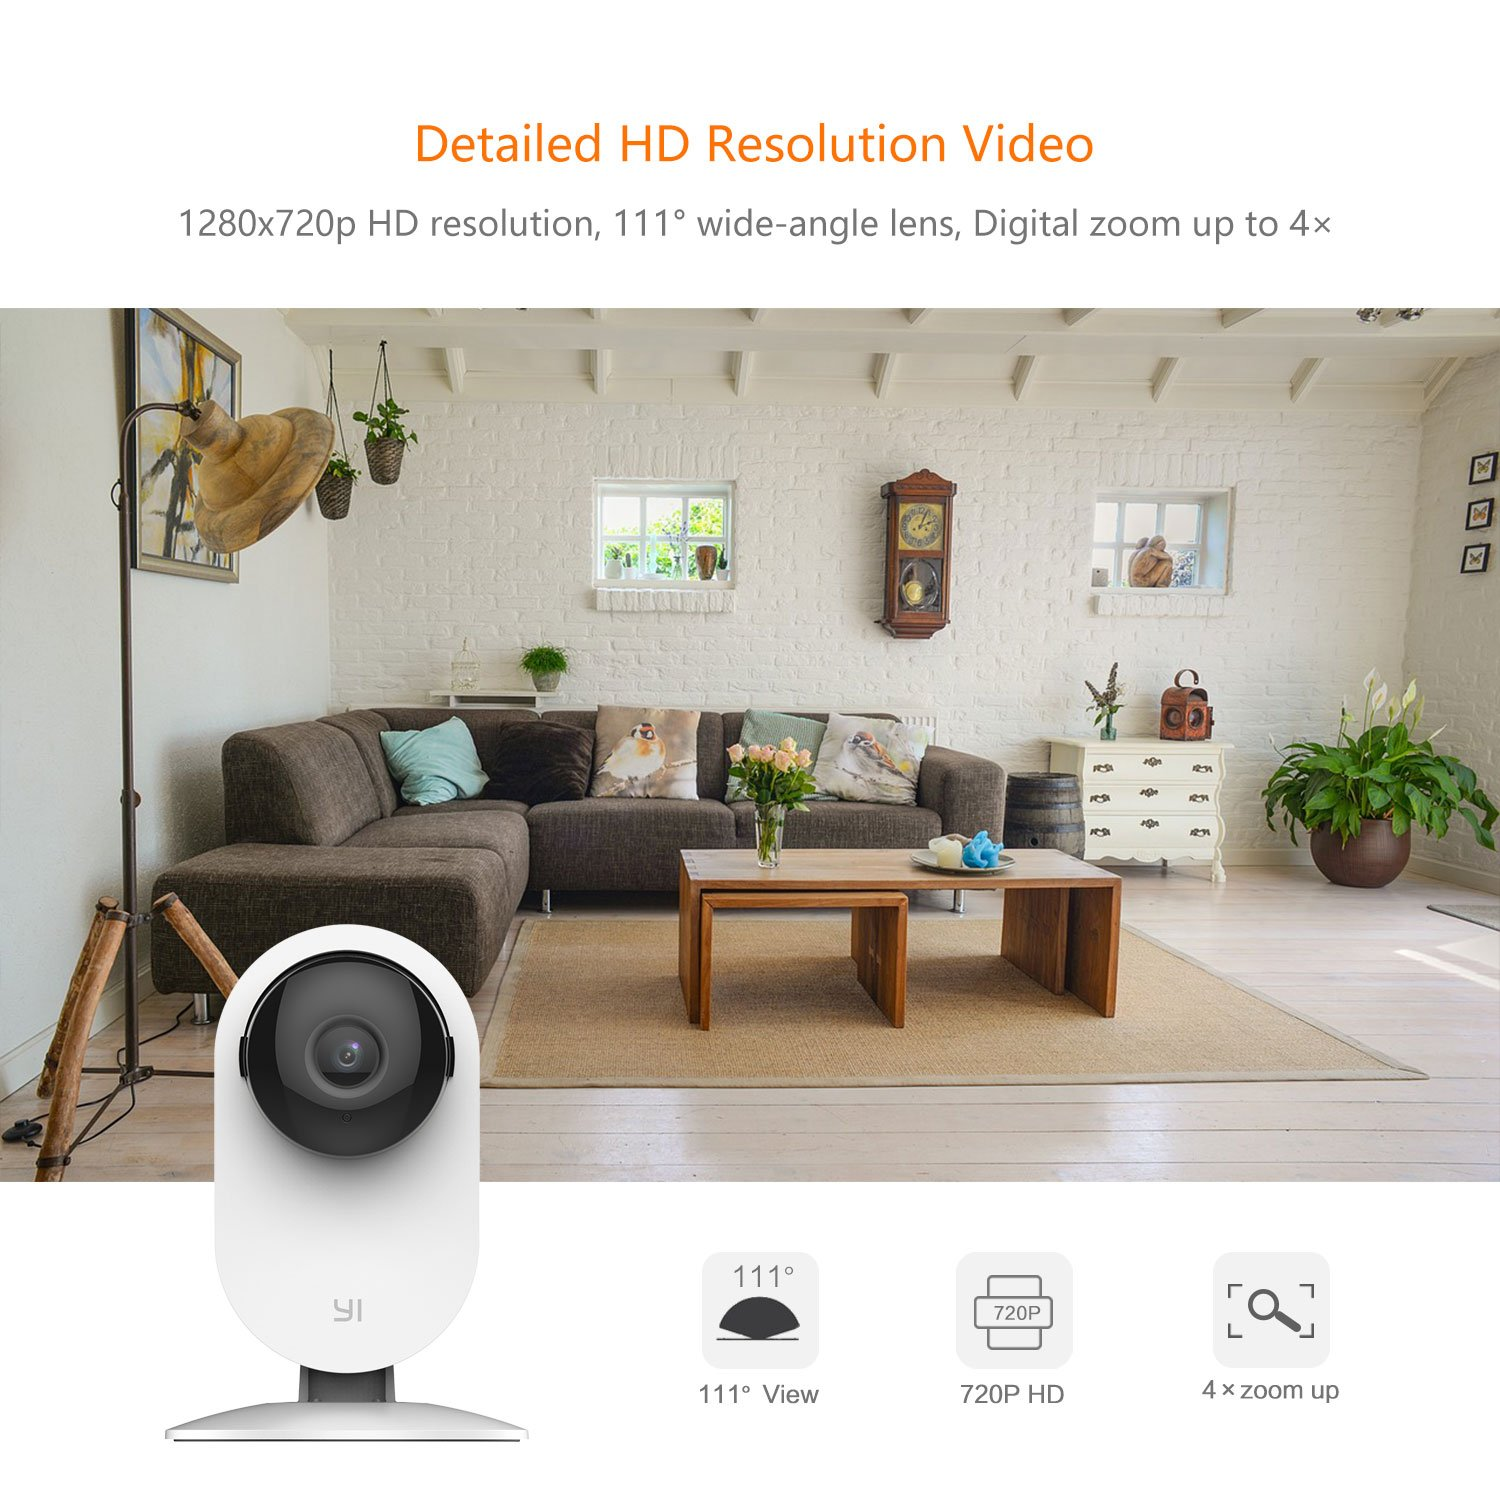 YI Home Camera, Security Camera Wireless IP Surveillance Camera with Night Vision Activity Detection Alert Baby Monitor, Remote Monitor with iOS, Android App - Cloud Service Available (2 Pack) by YI (Image #2)